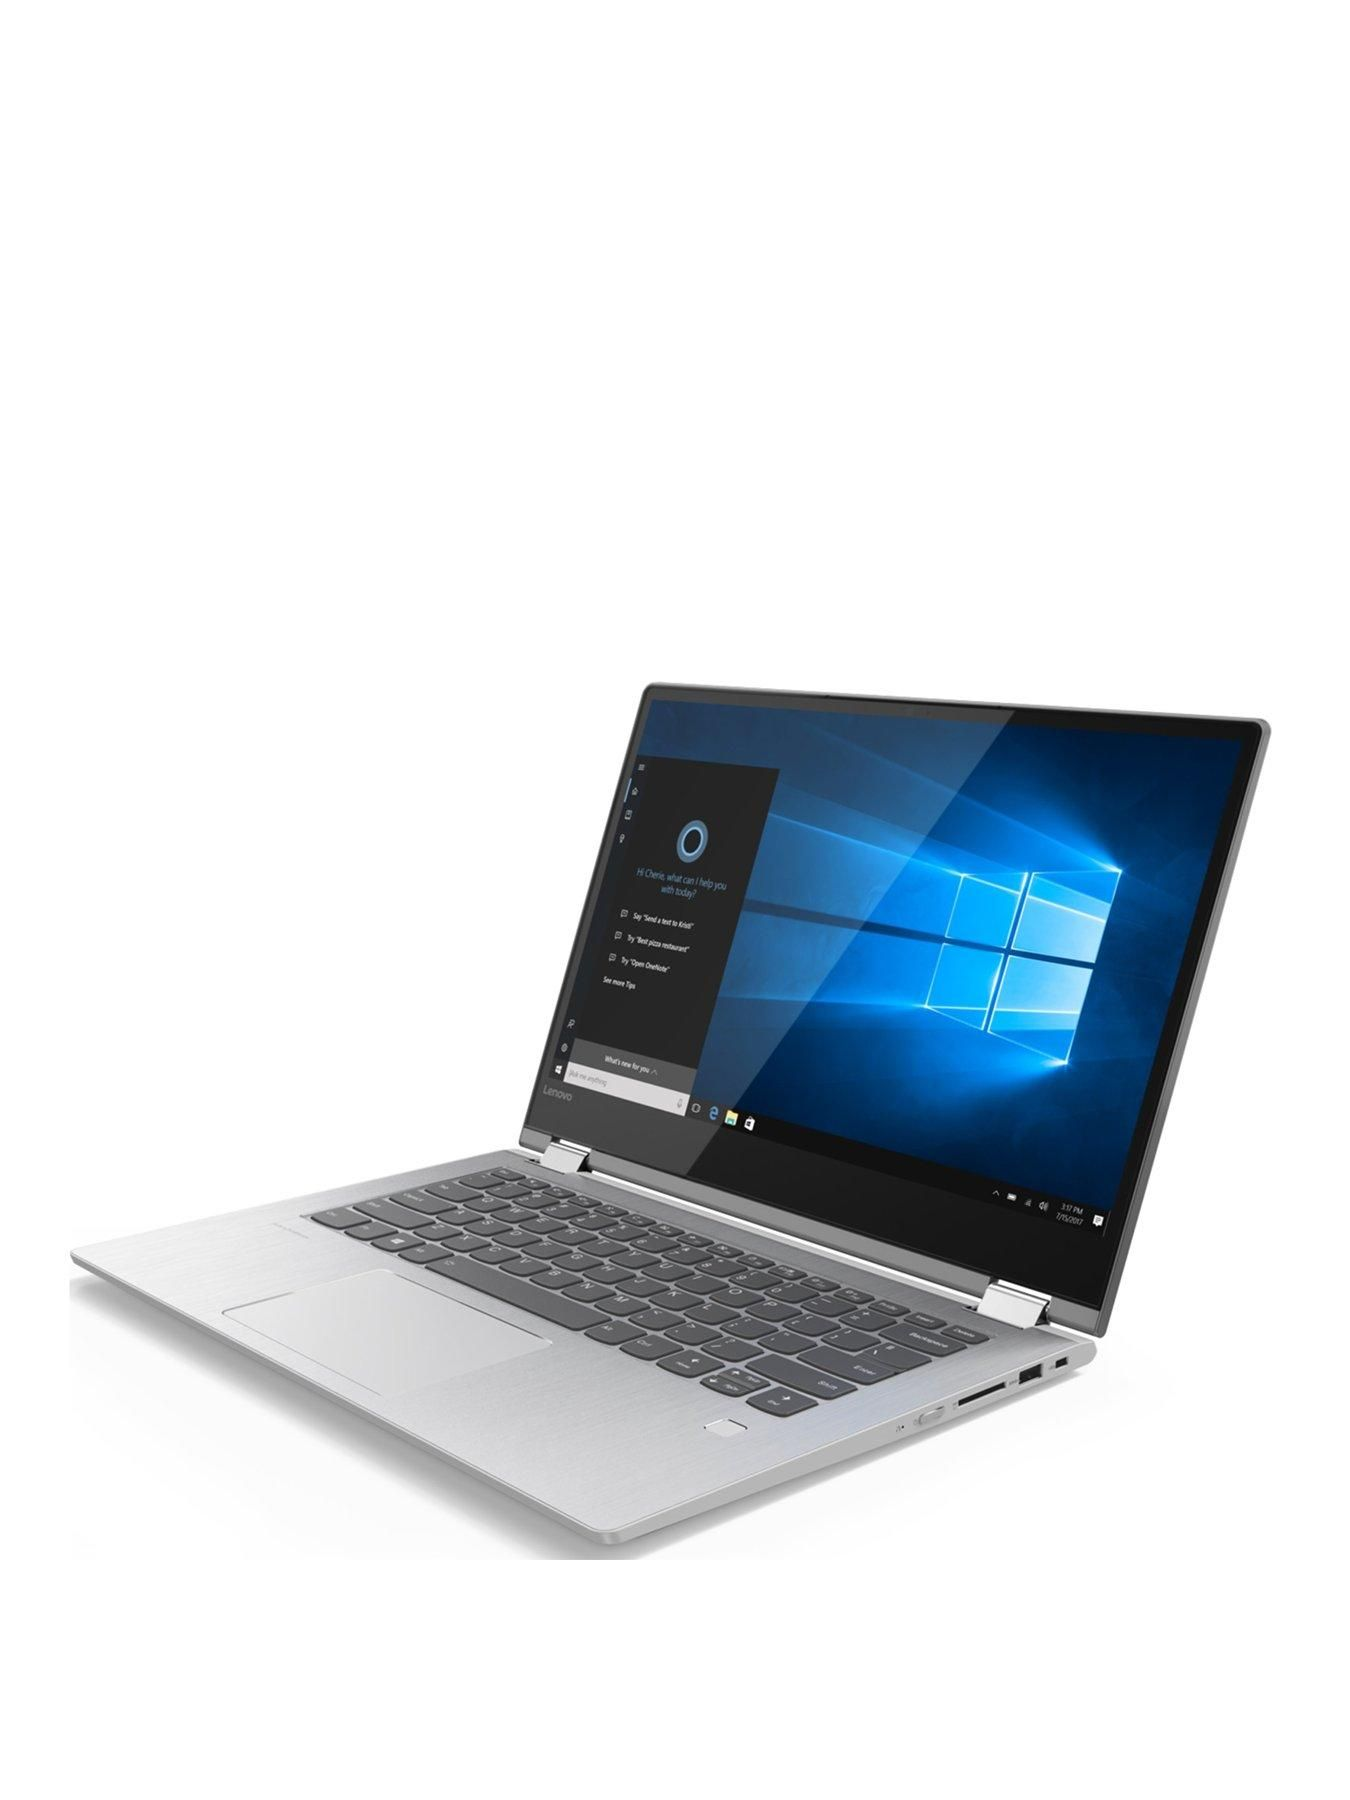 Yoga 530 14ikb Intel Core I3 4gb Ram 128gb Ssd 14 Inch Full Hd Laptop Mineral Grey With Optional Microsoft Office 365 Home And Mcafee Total Protection 5 1 Year 4gb Ram Drive Storage